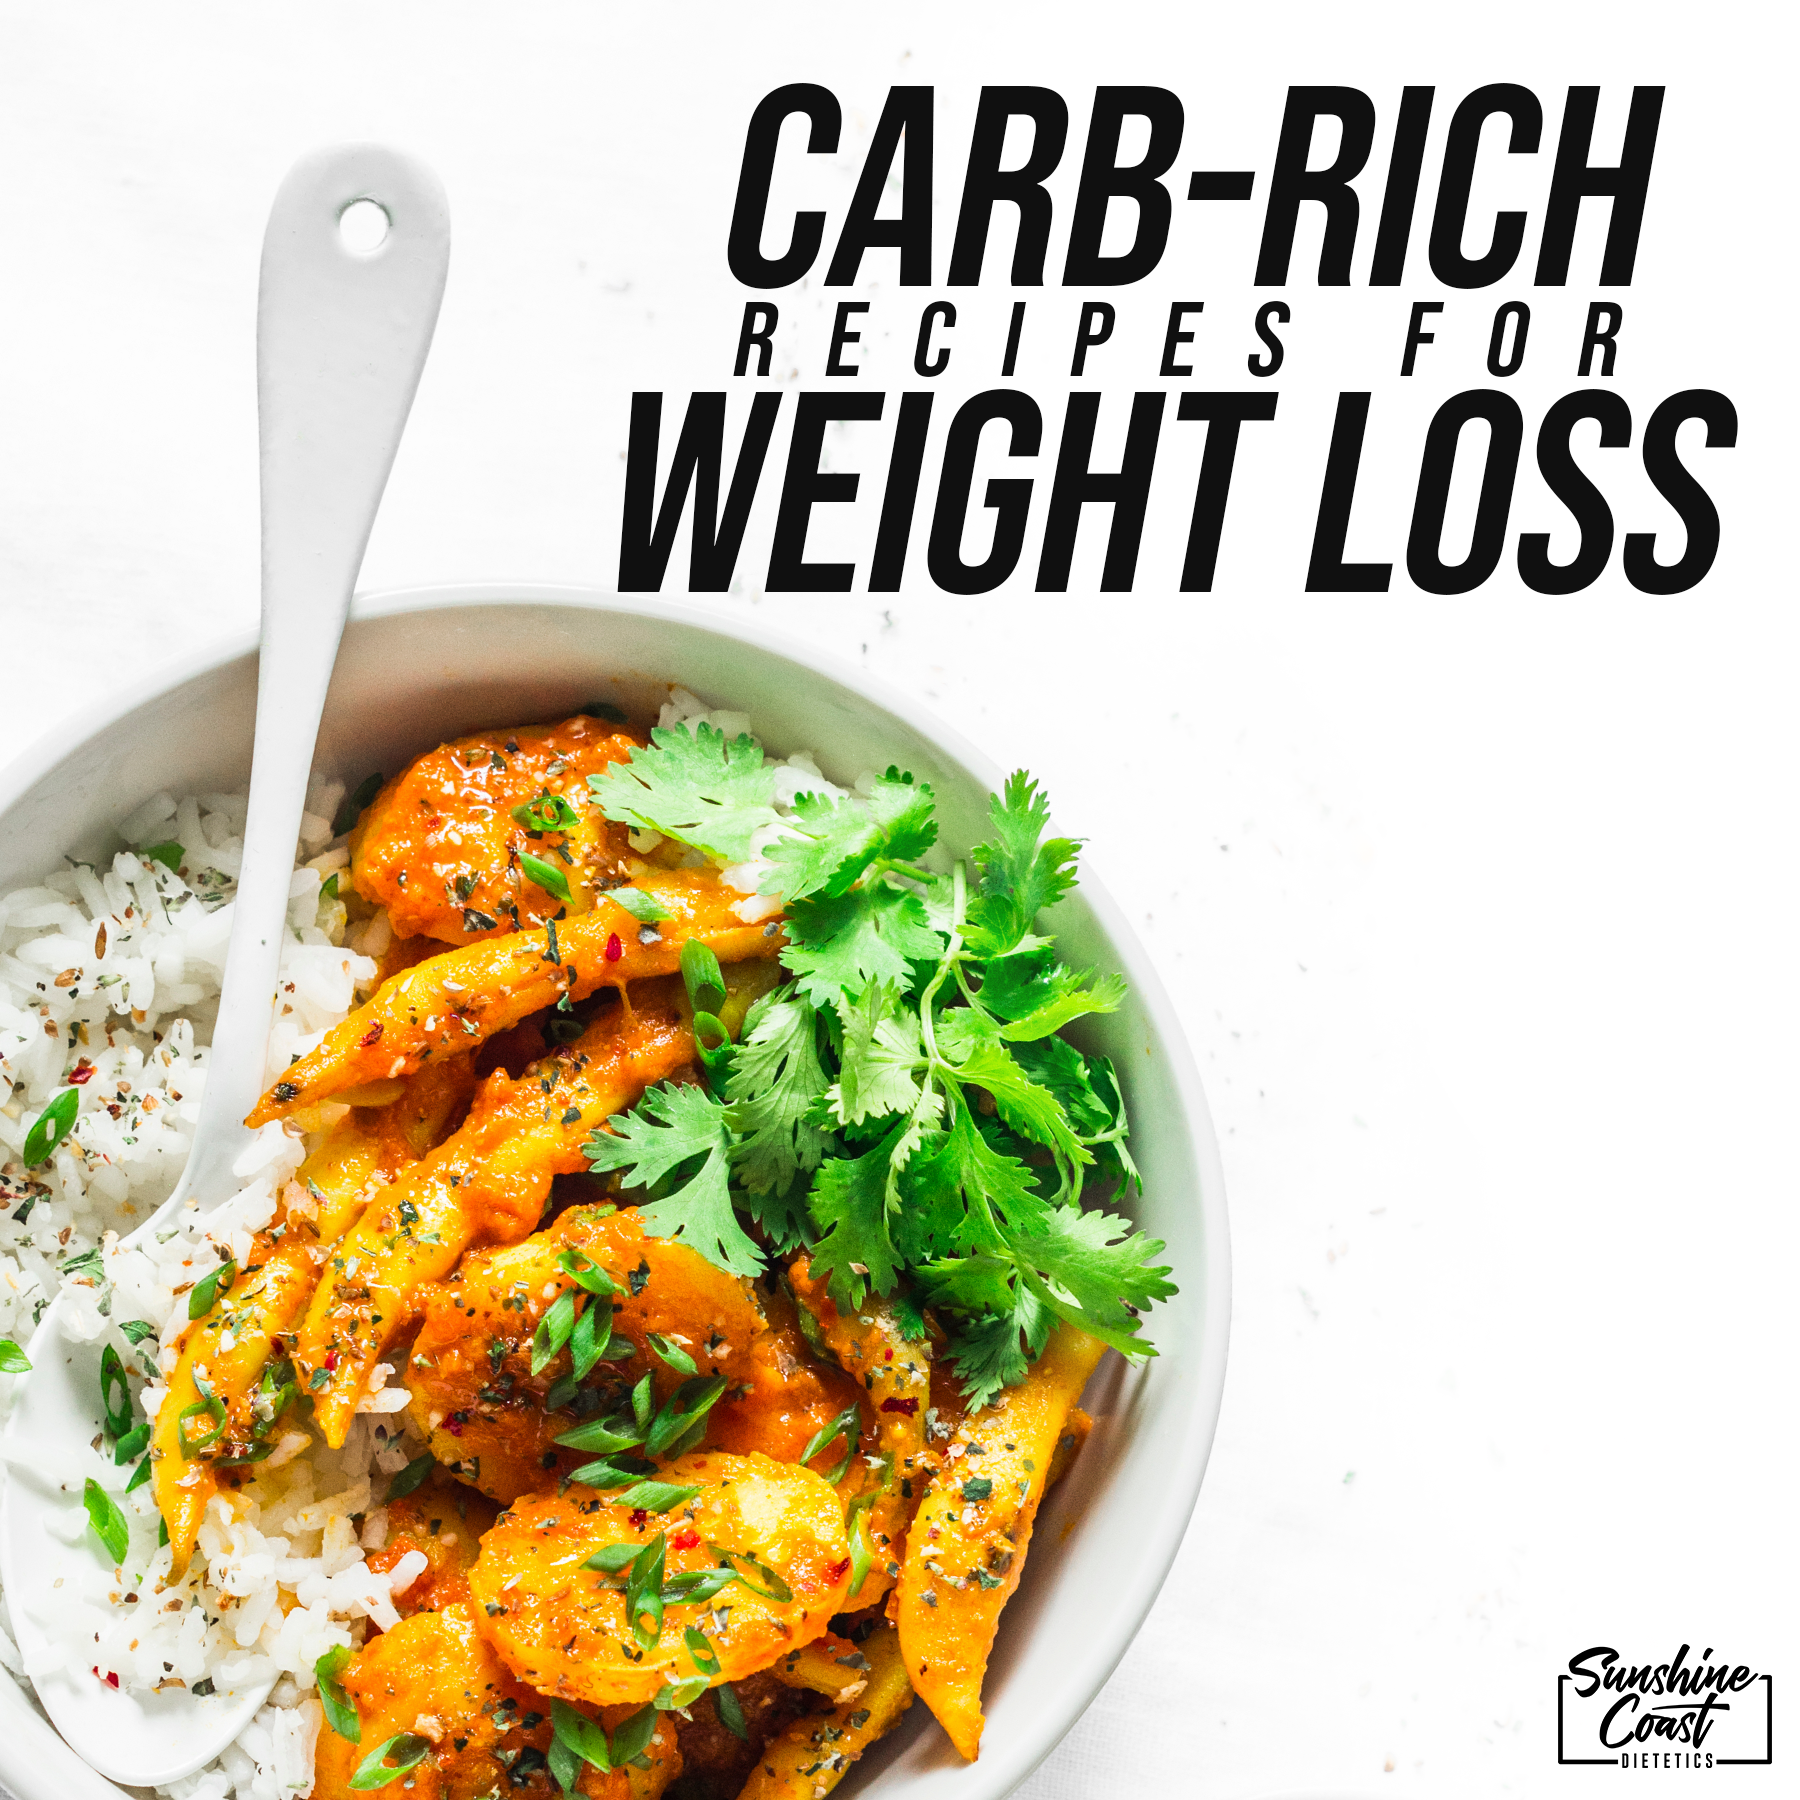 Carb-Rich Recipes for Weight Loss